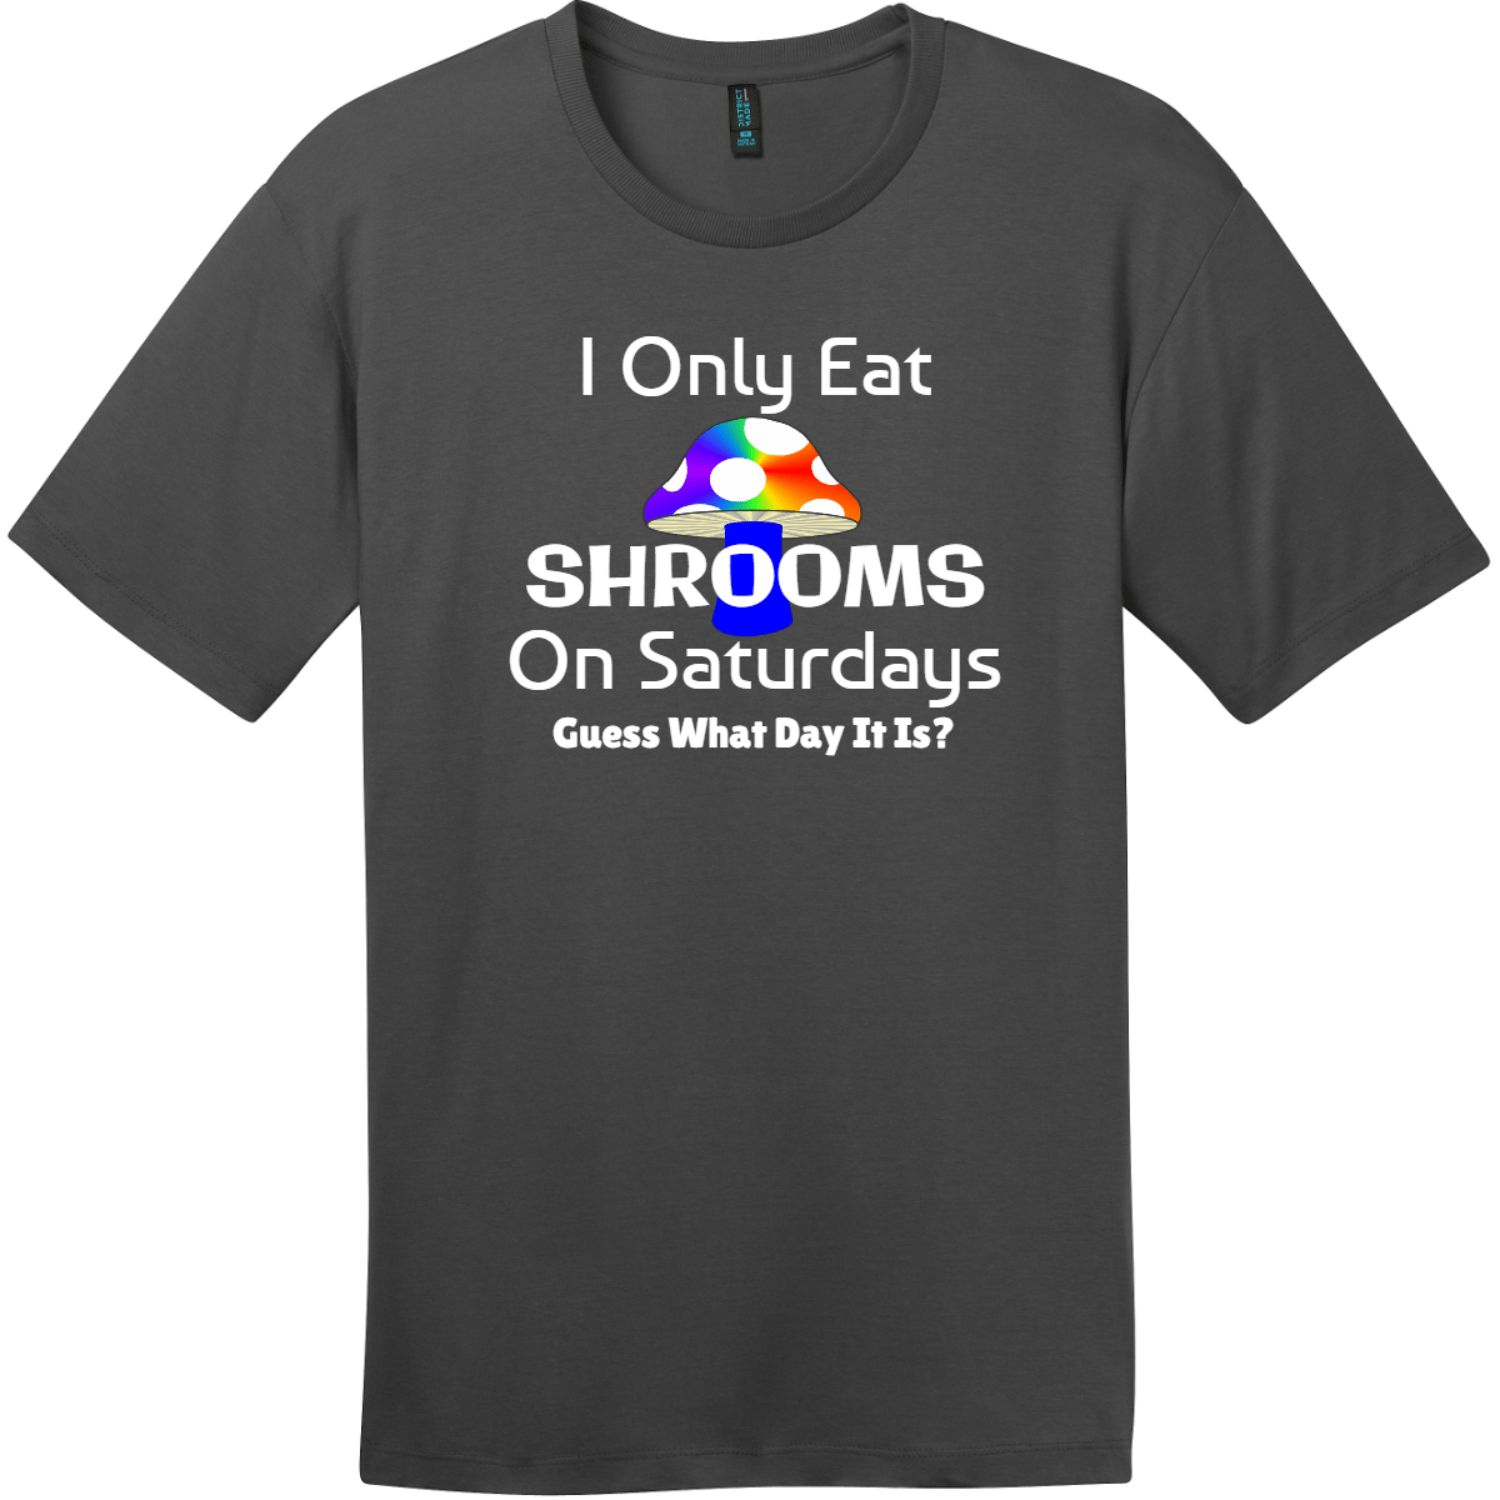 I Only Eat Shrooms On Saturdays T-Shirt Charcoal District Perfect Weight Tee DT104